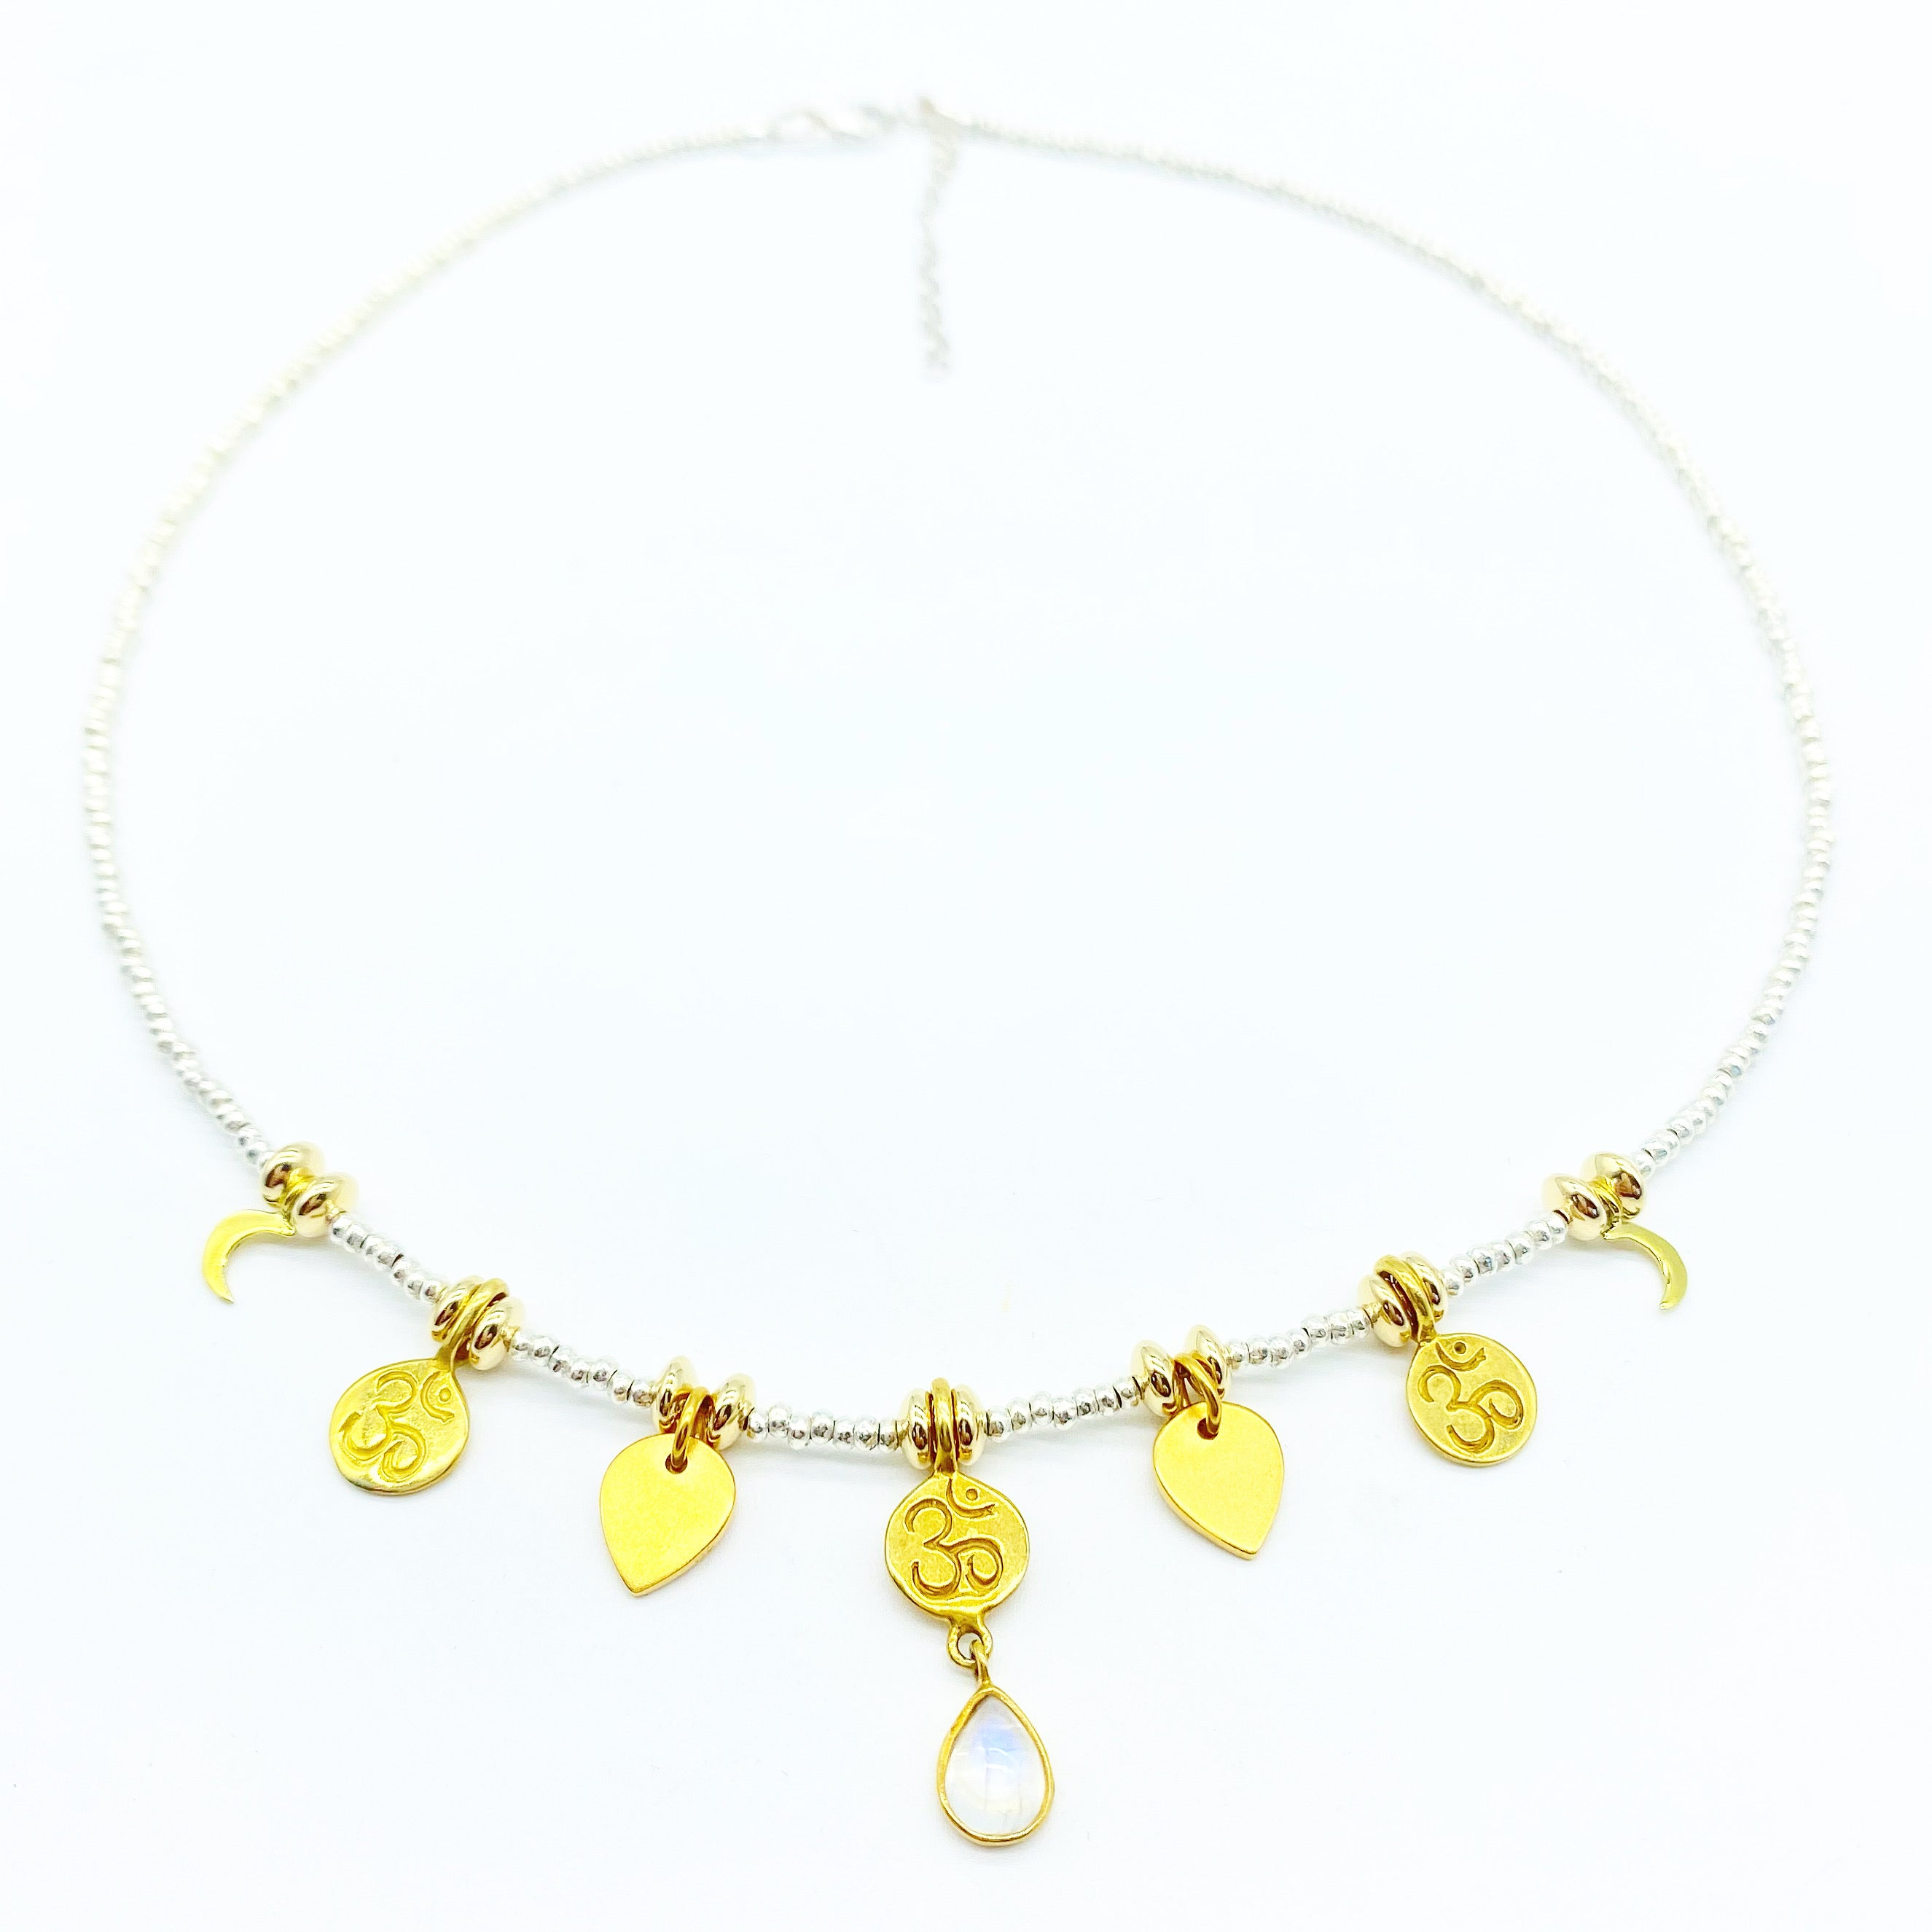 HILLTRIBE OM LOTUS MOON CHARM NECKLACES